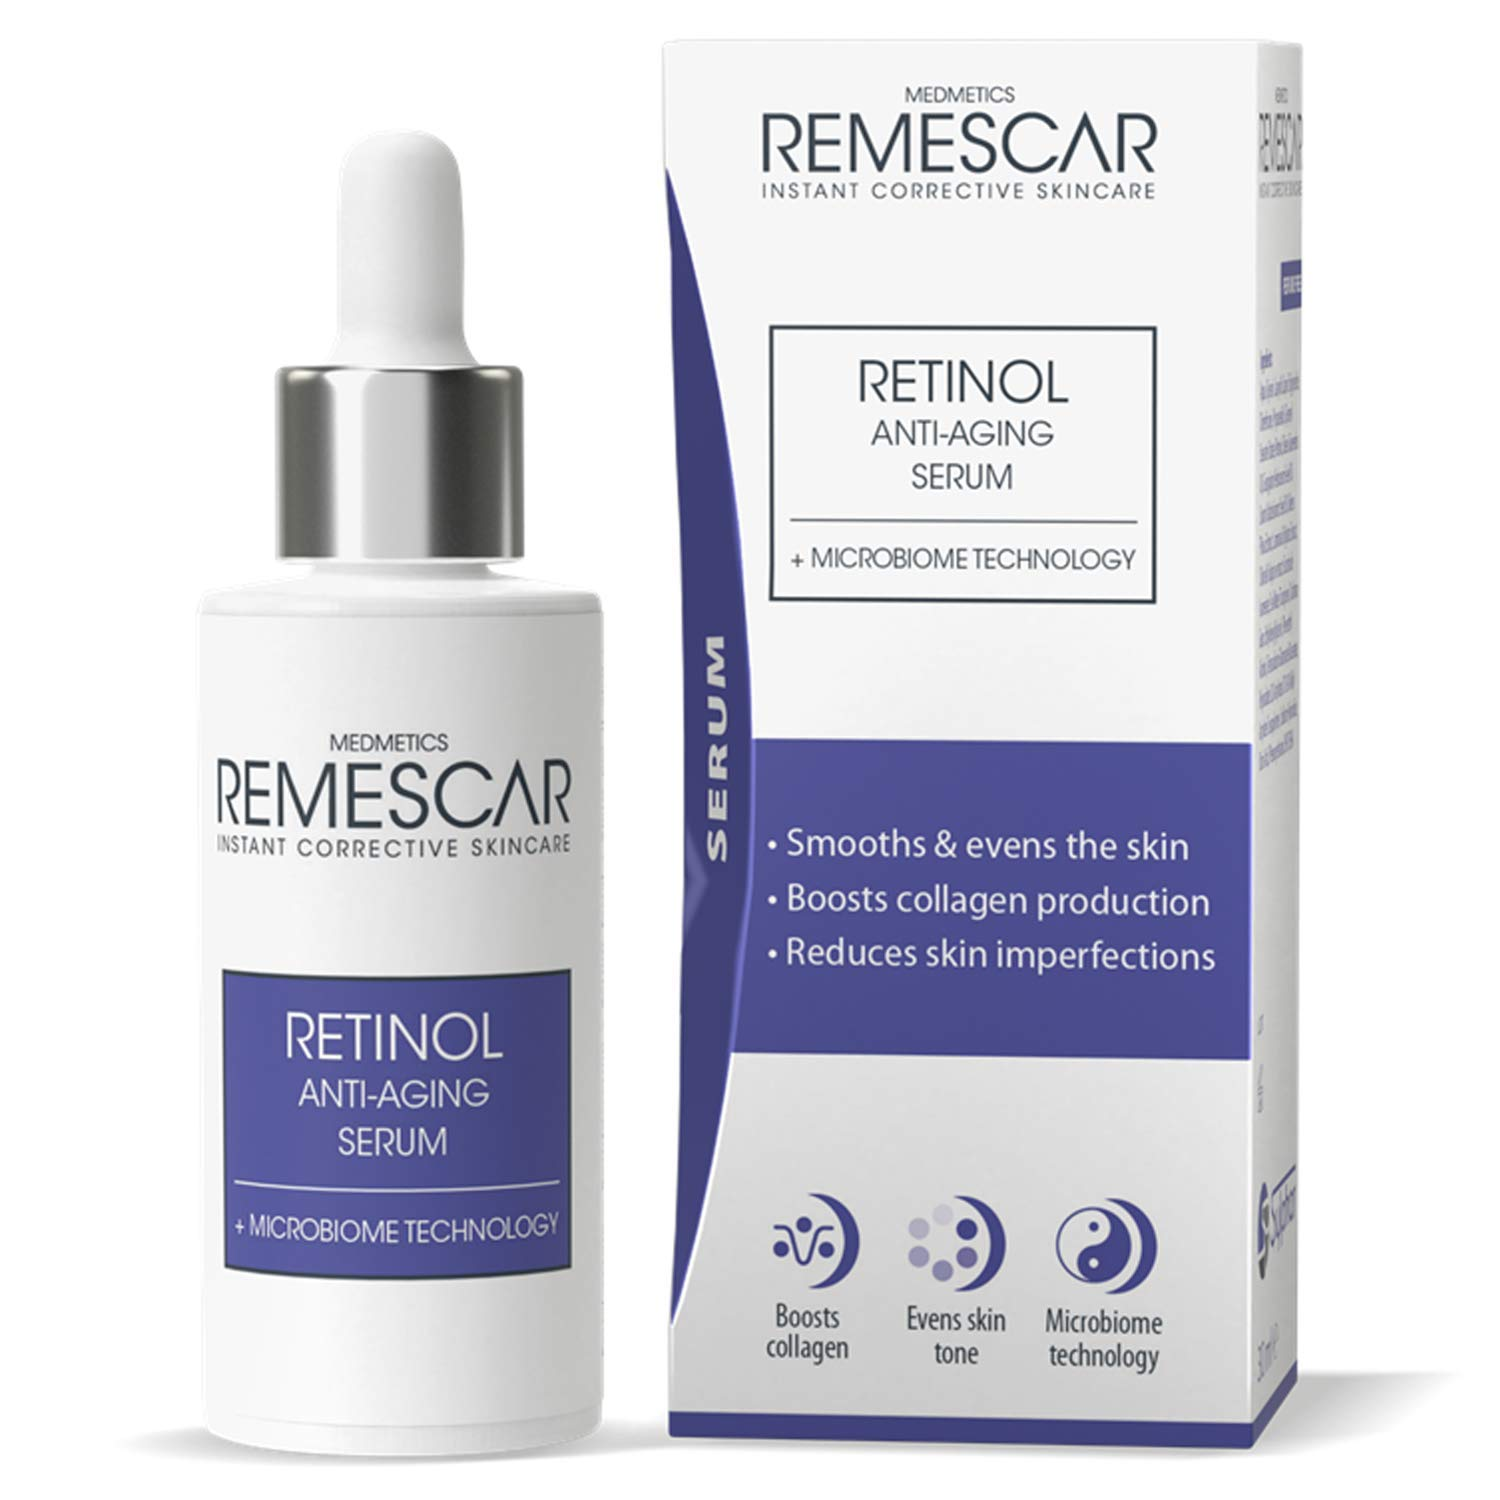 Remescar - Retinol Anti-Aging Serum - Microbiome Technology - Boosts Collagen - Smooths & Firms Skin - Counteracts Wrinkles - Reduces Skin Imperfections